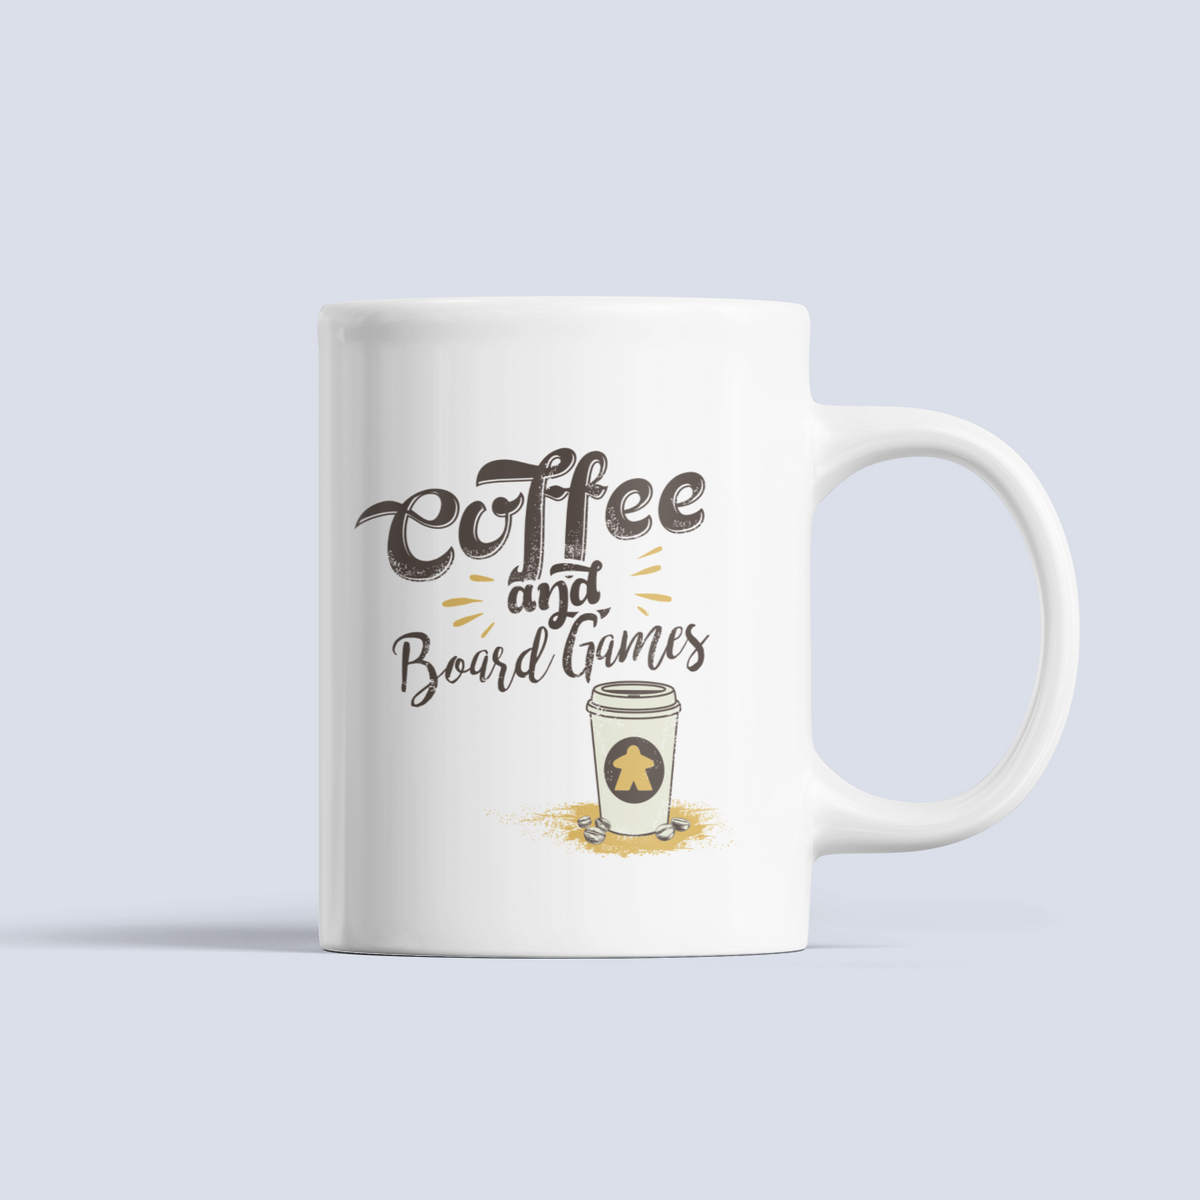 coffee to go and board games ceramic mug